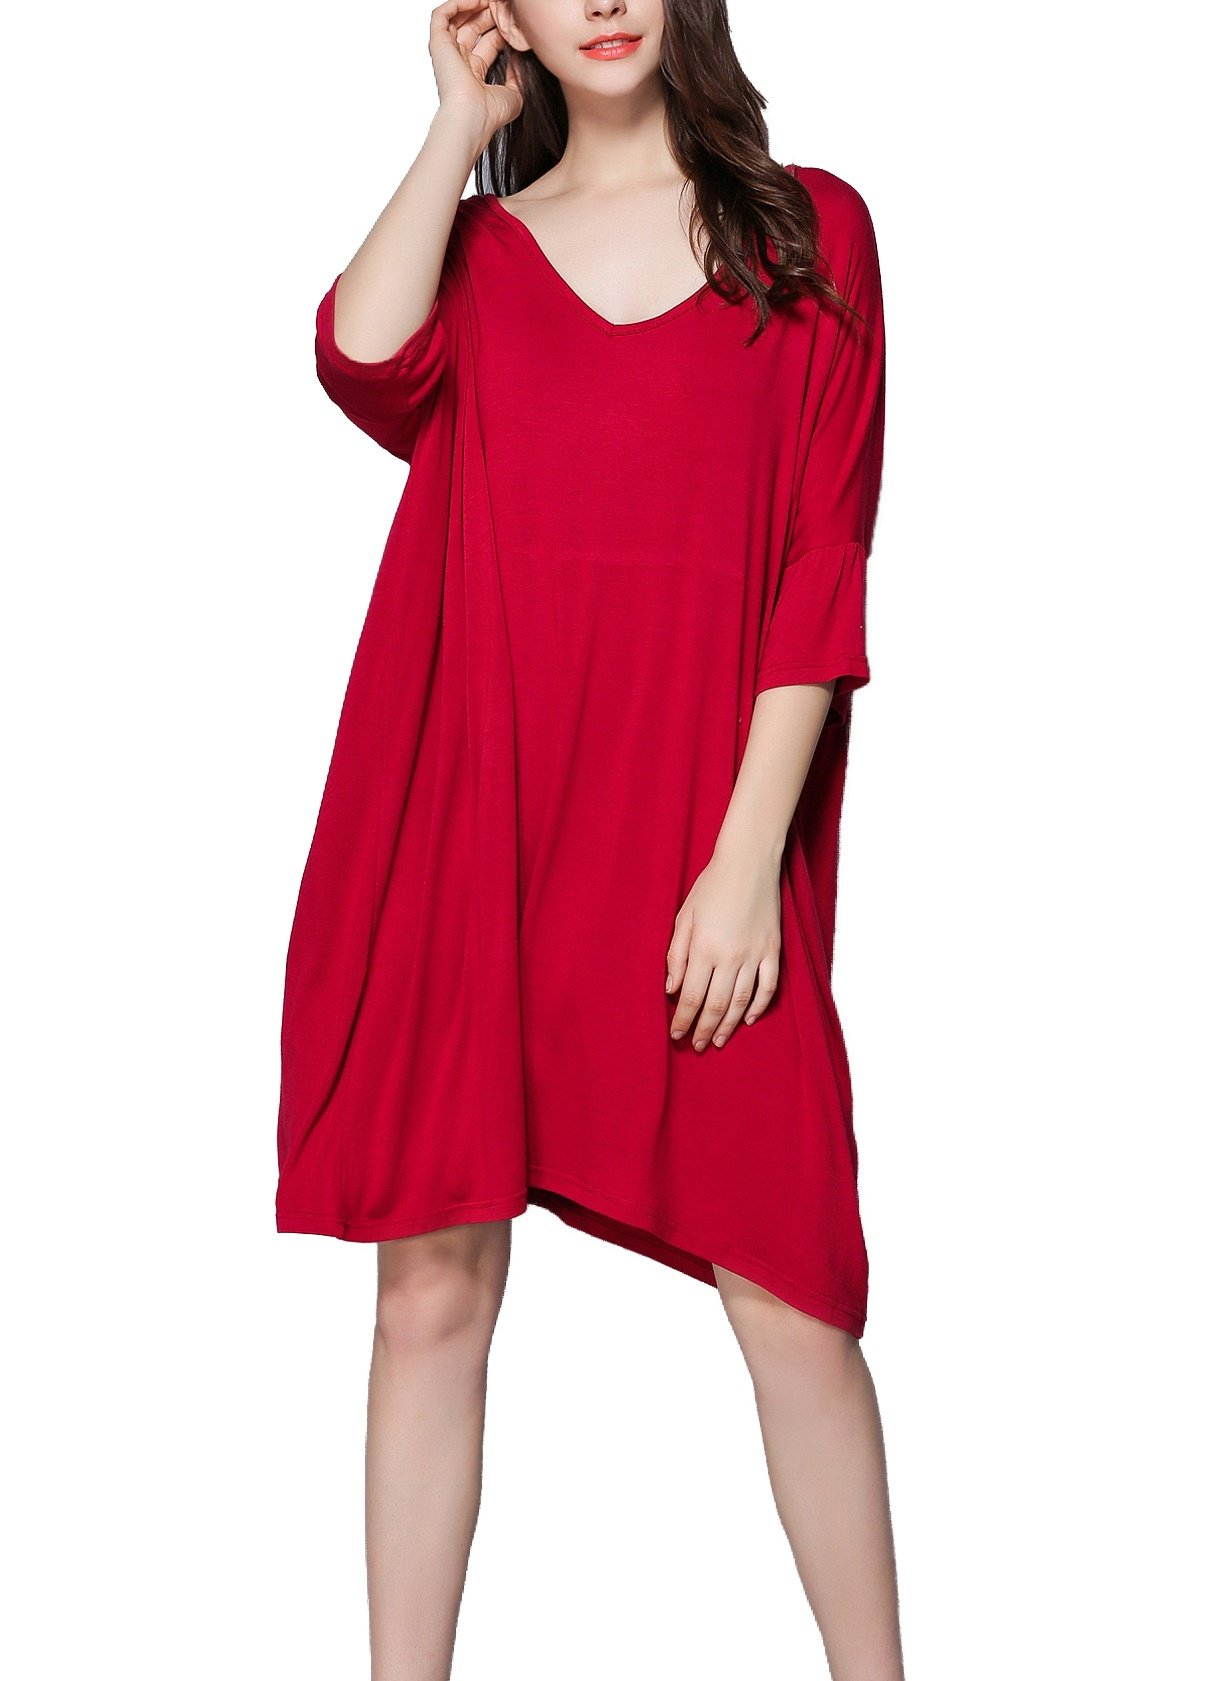 Lealac Women's Cotton V-Neck Short Sleeve T-Shirt Dress Plus Size Loose Sleepwear Gifts For Women 5325 Red M